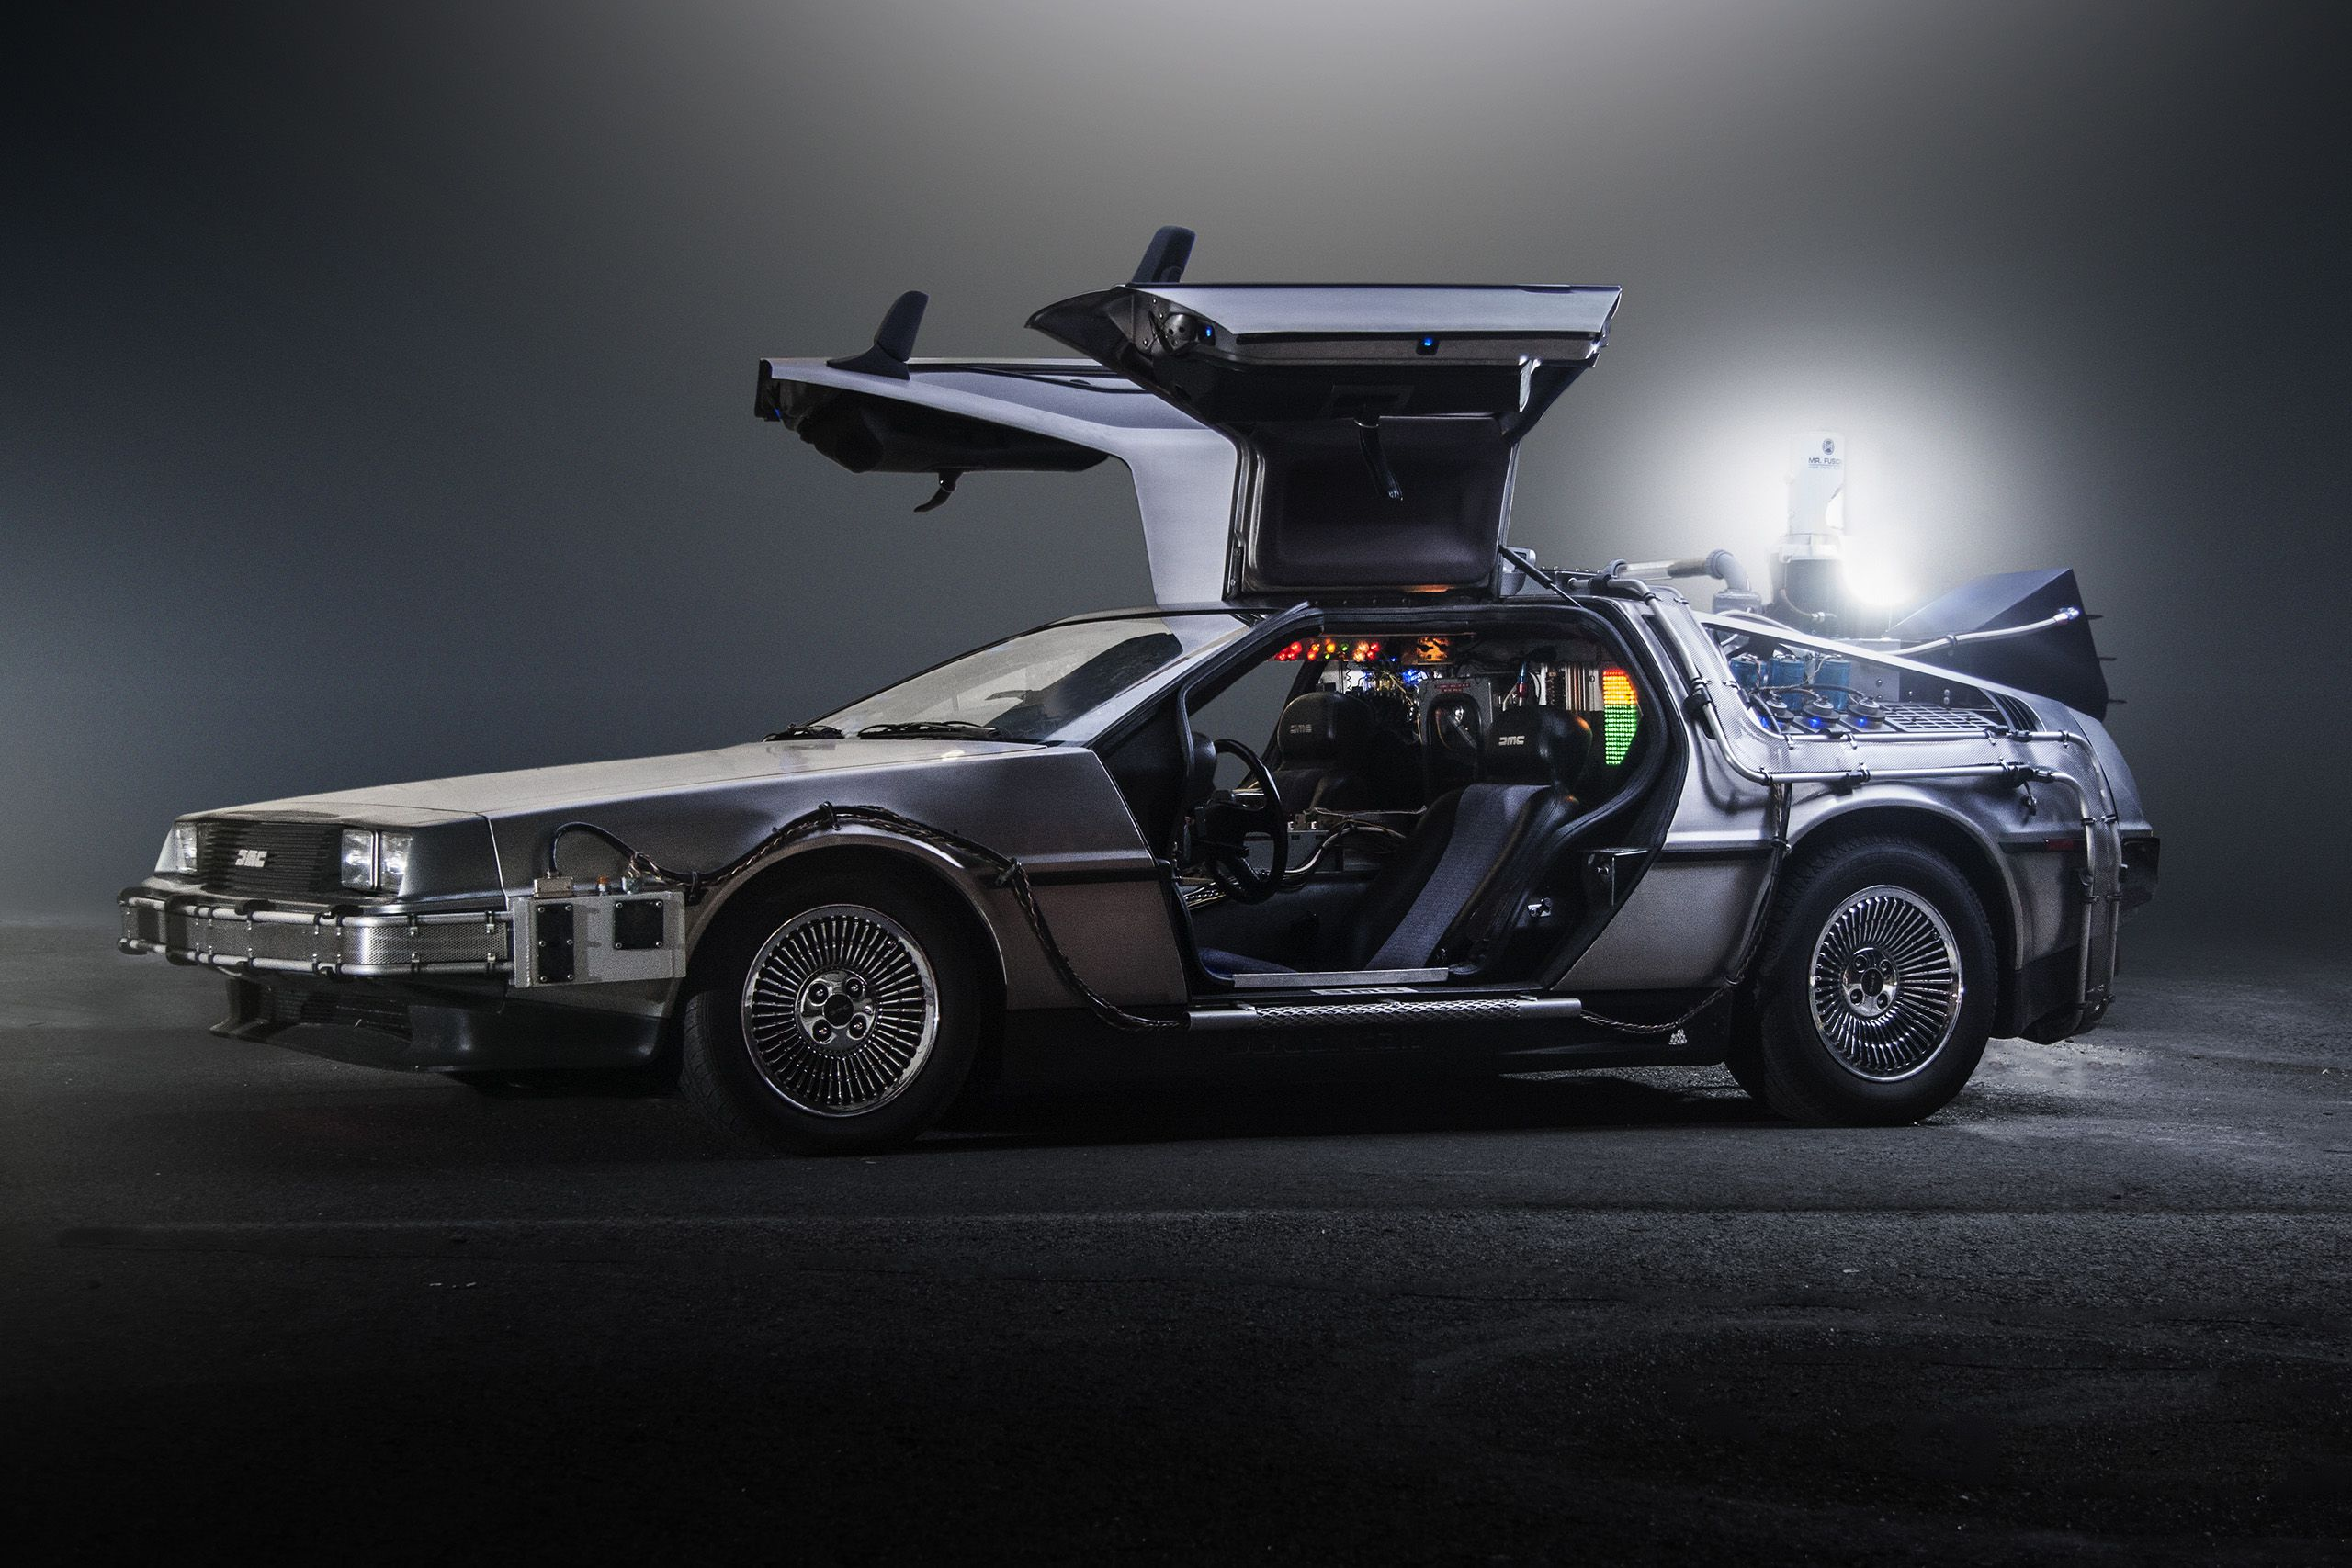 The DeLorean motor car from Back to the Future